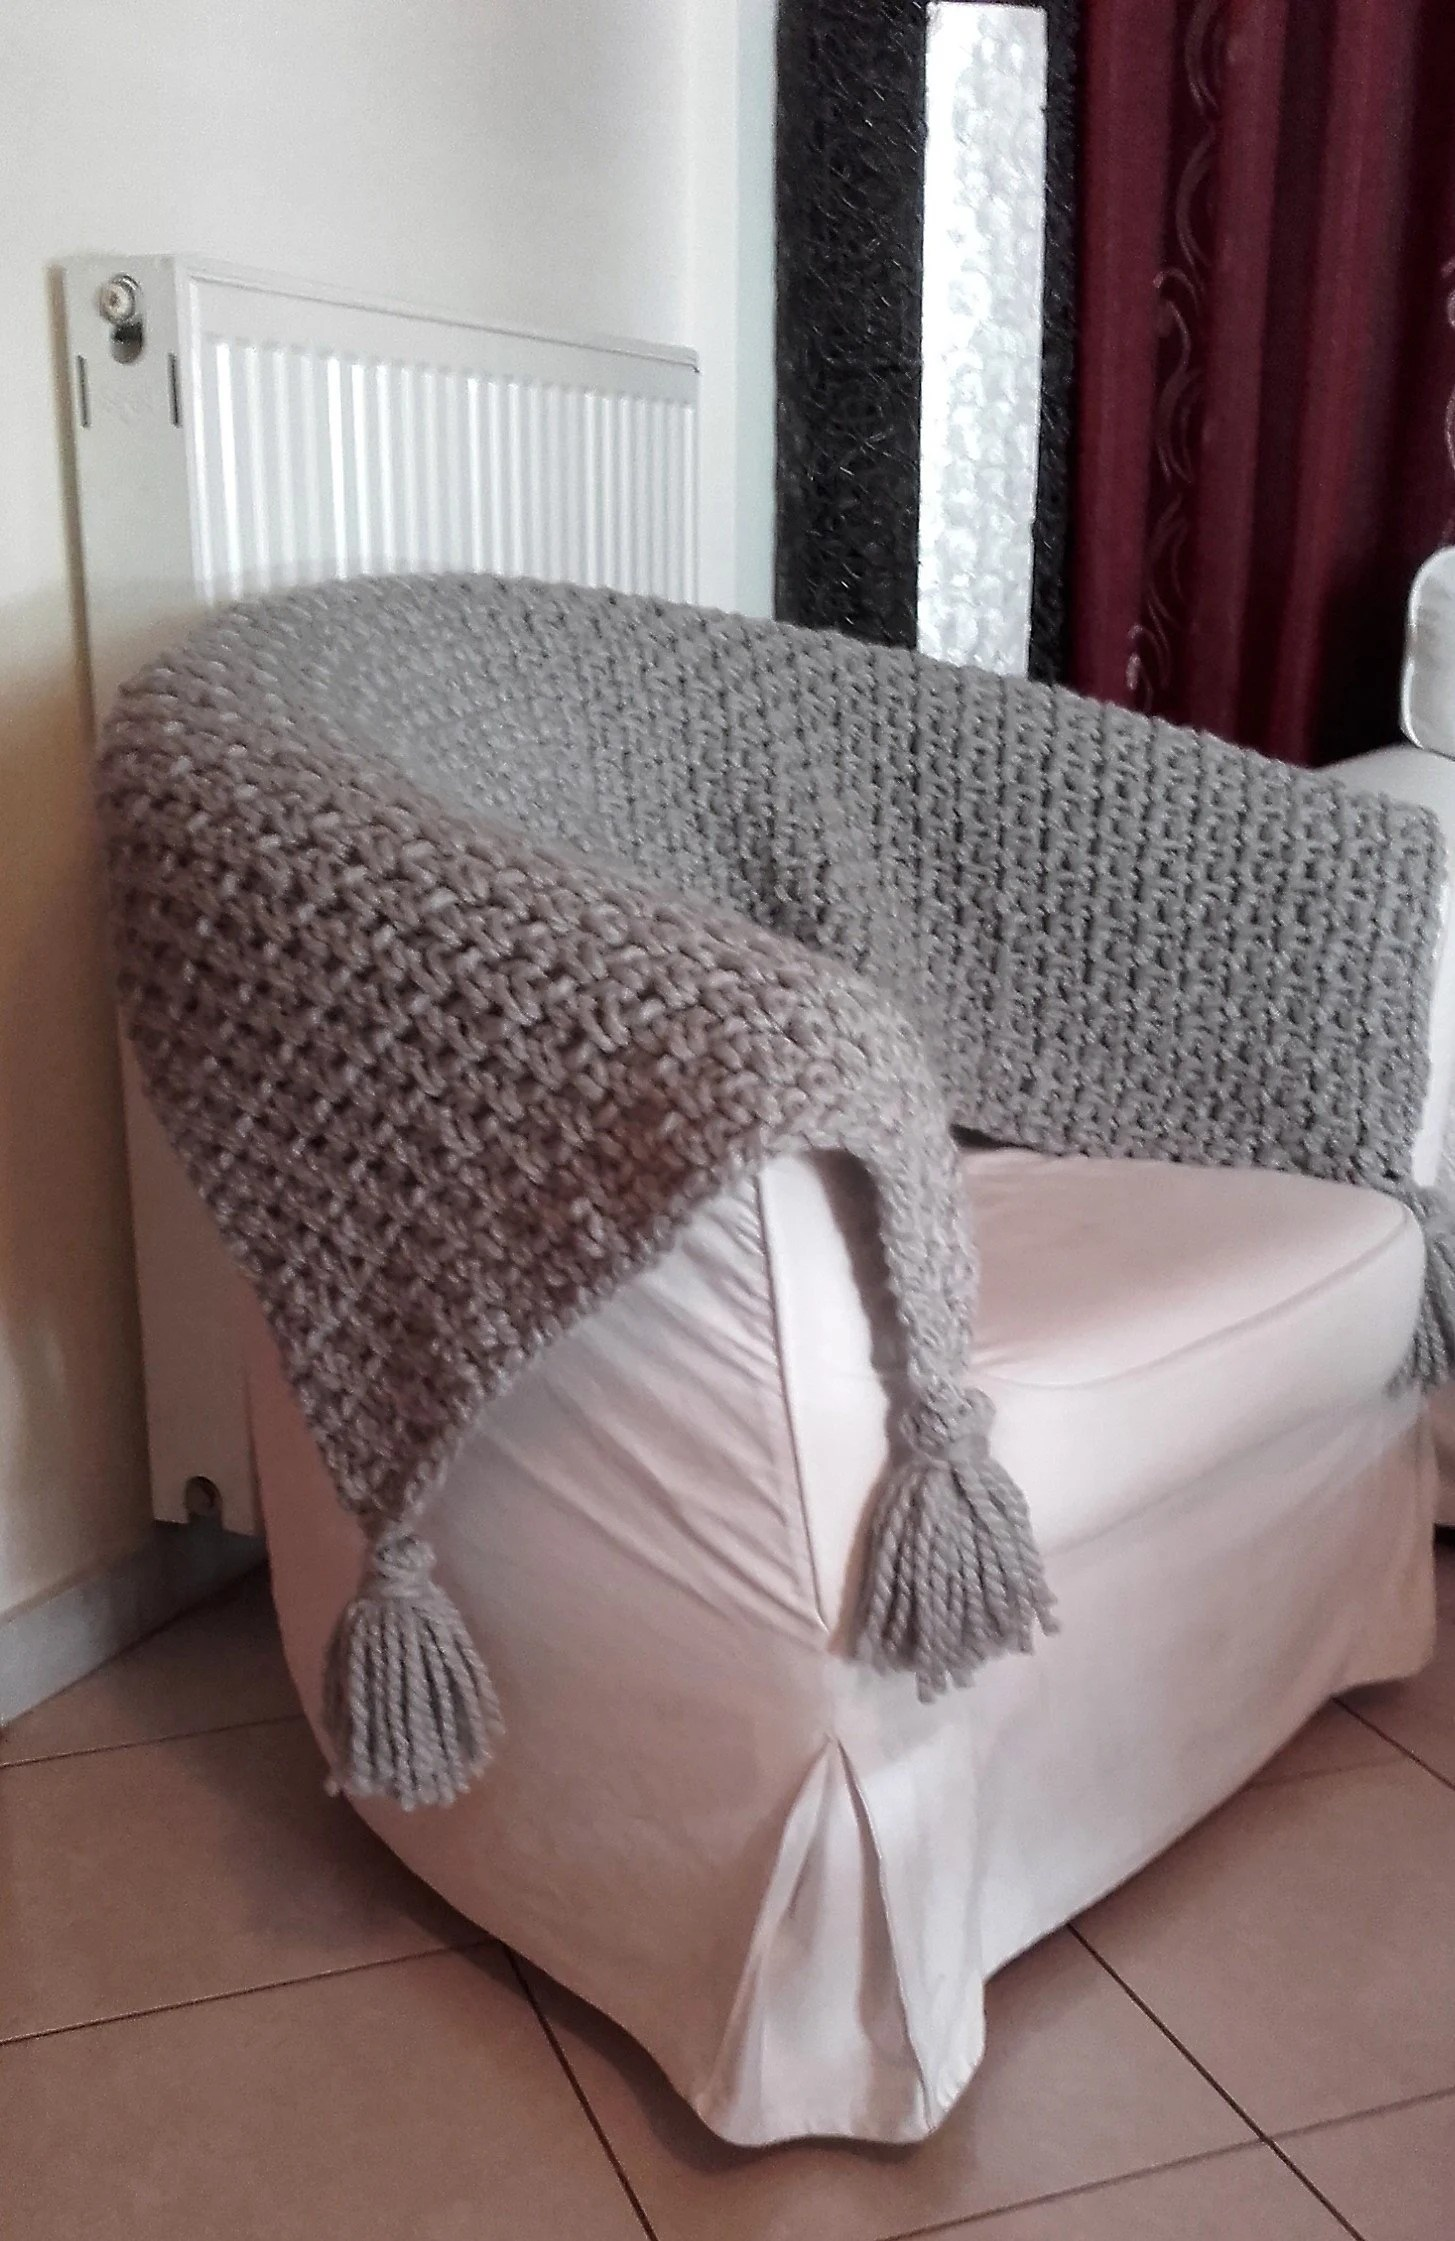 Sofa Throws Knitted Chunky Knit Throw Blanket Sofa Throw With Tassels Boho Bedding Couch Bed Cover Wool Crochet Throw Hand Knit Throw Blanket Dorm Decor